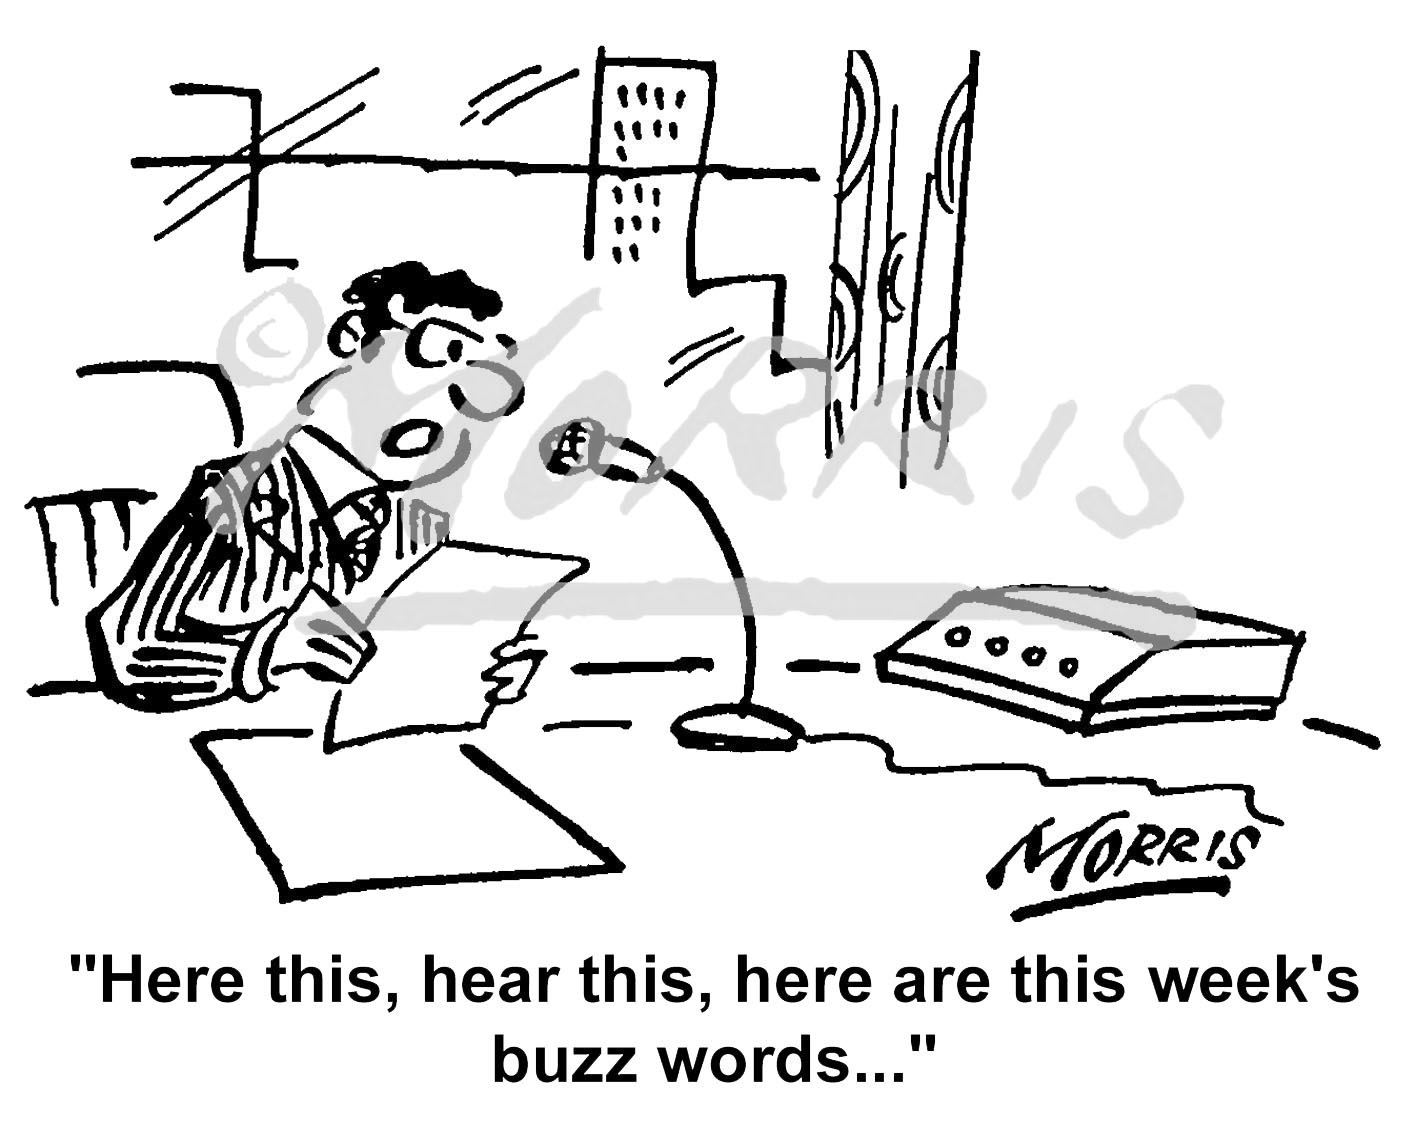 Office Manager buzz words cartoon – Ref: 0959bw